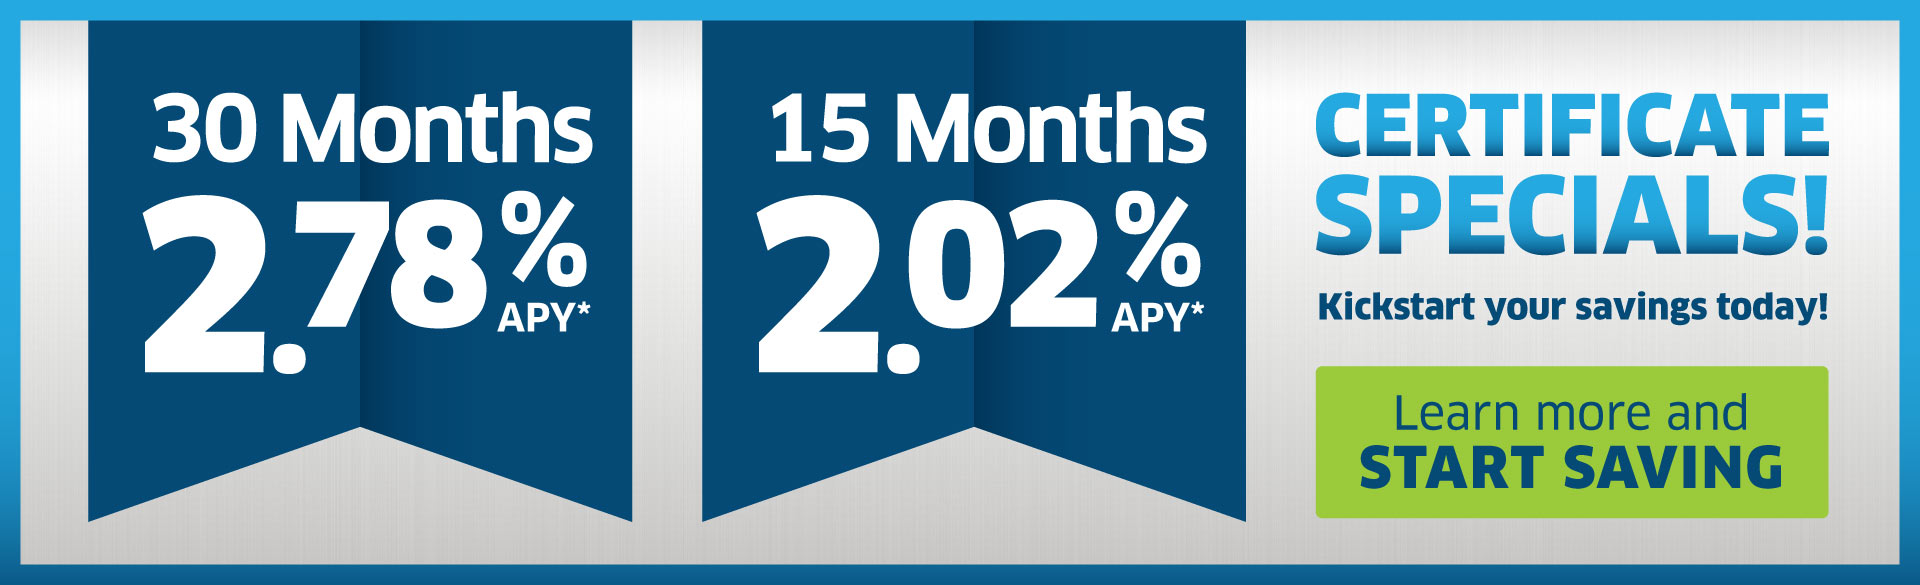 30 Month and 15 Month Share Certificate Specials - Web Banner